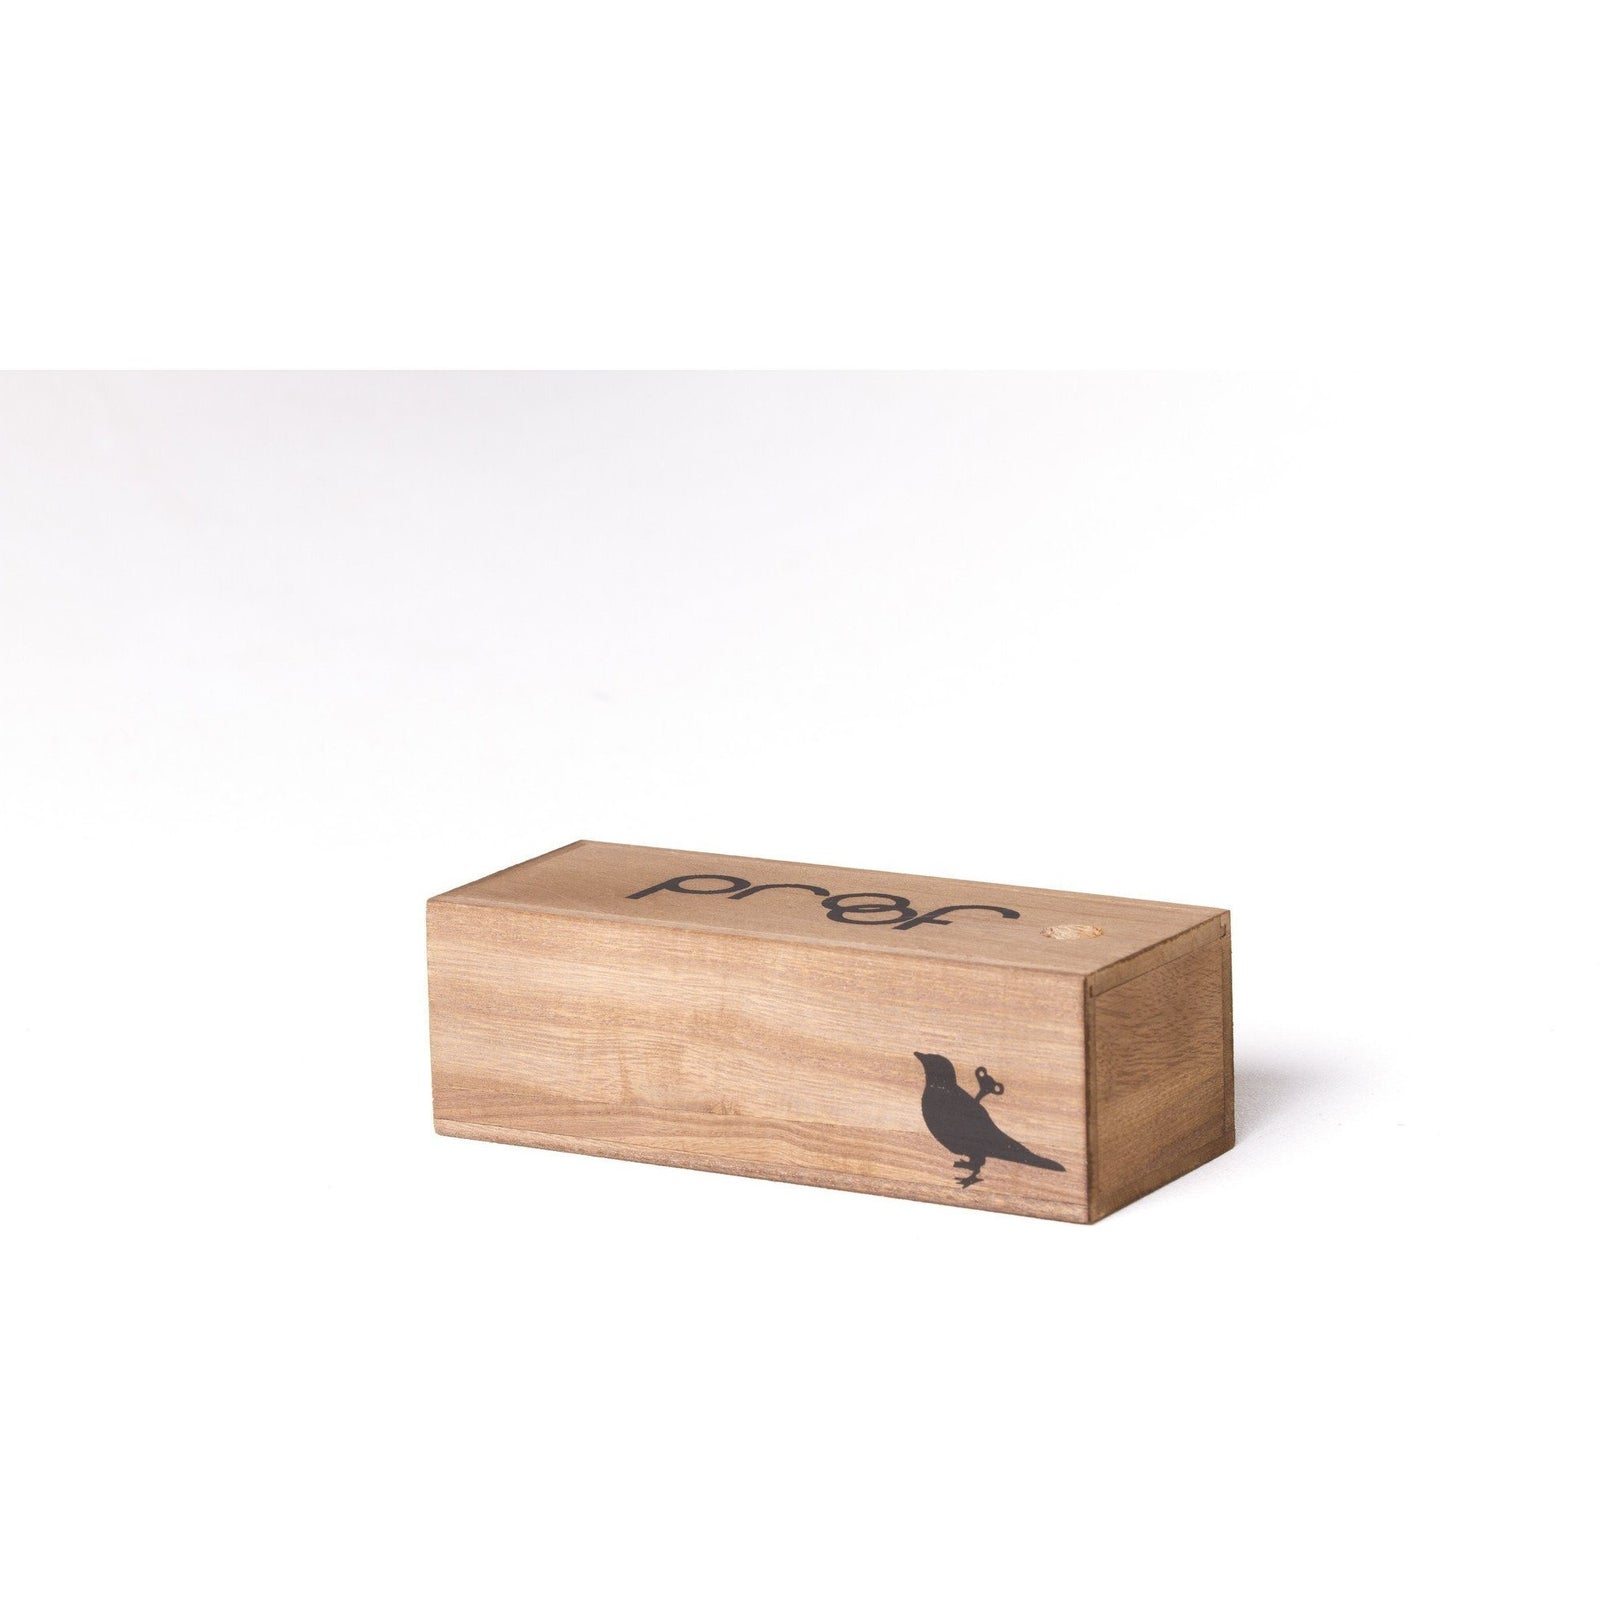 Accessories - Wooden Hard Case By Proof